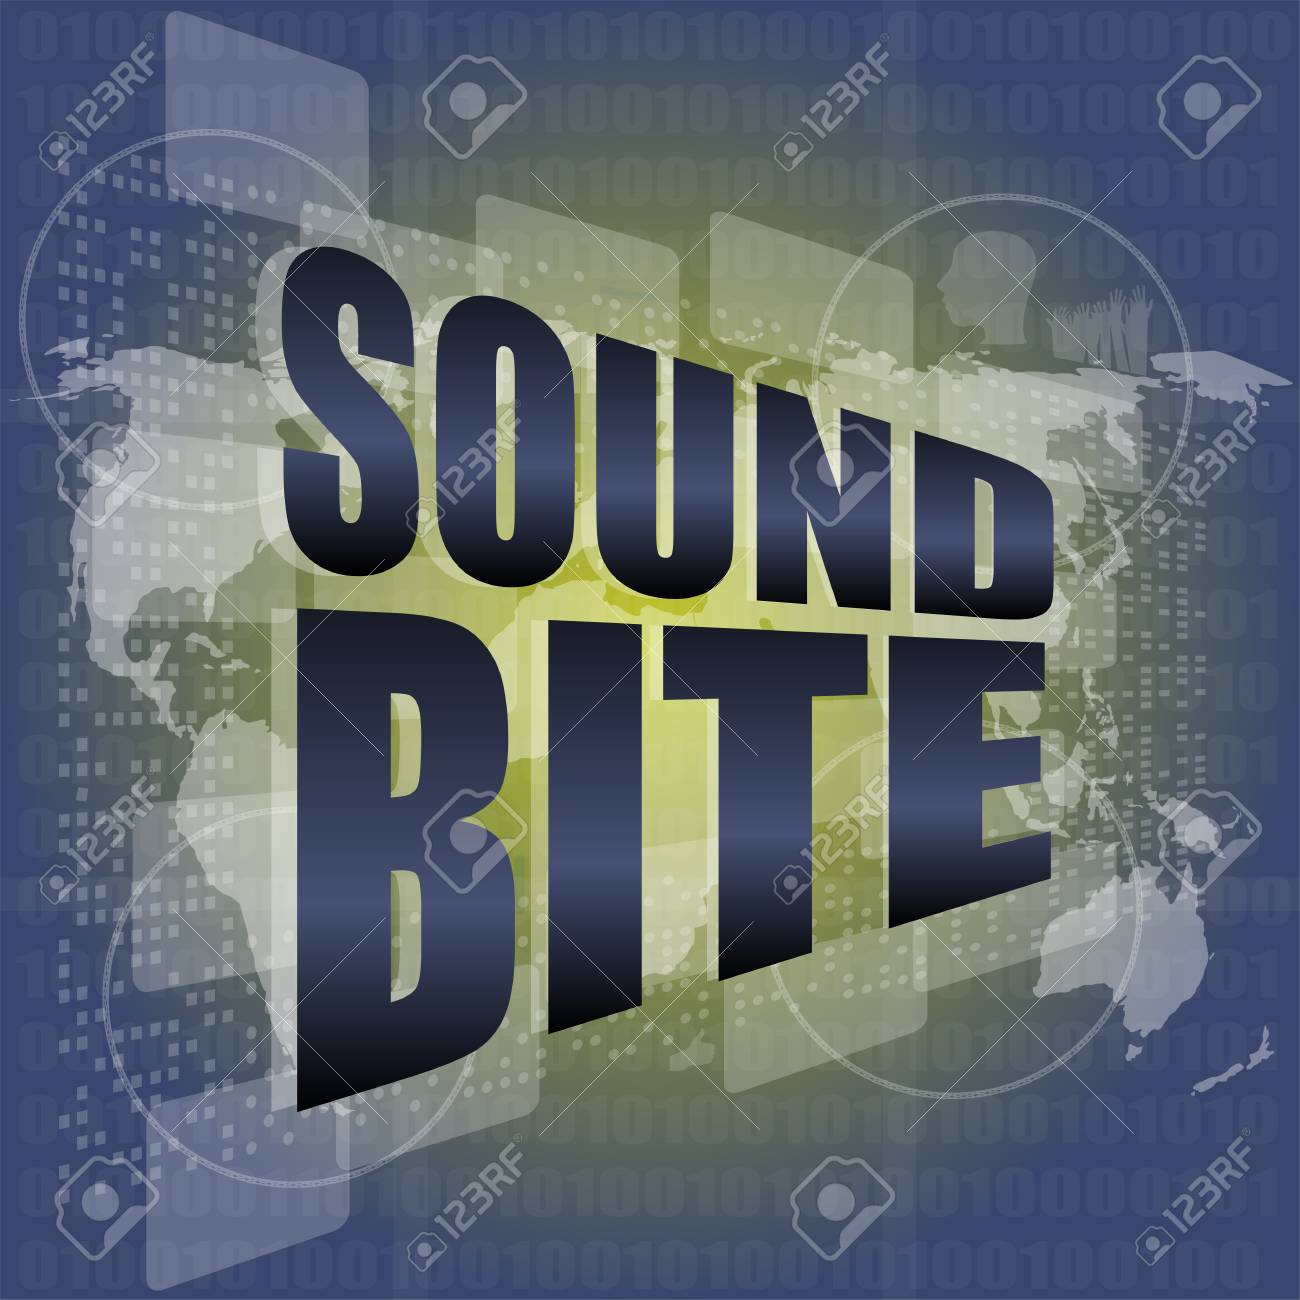 Sound bite words on digital screen background with world map stock sound bite words on digital screen background with world map stock photo 25214451 gumiabroncs Choice Image